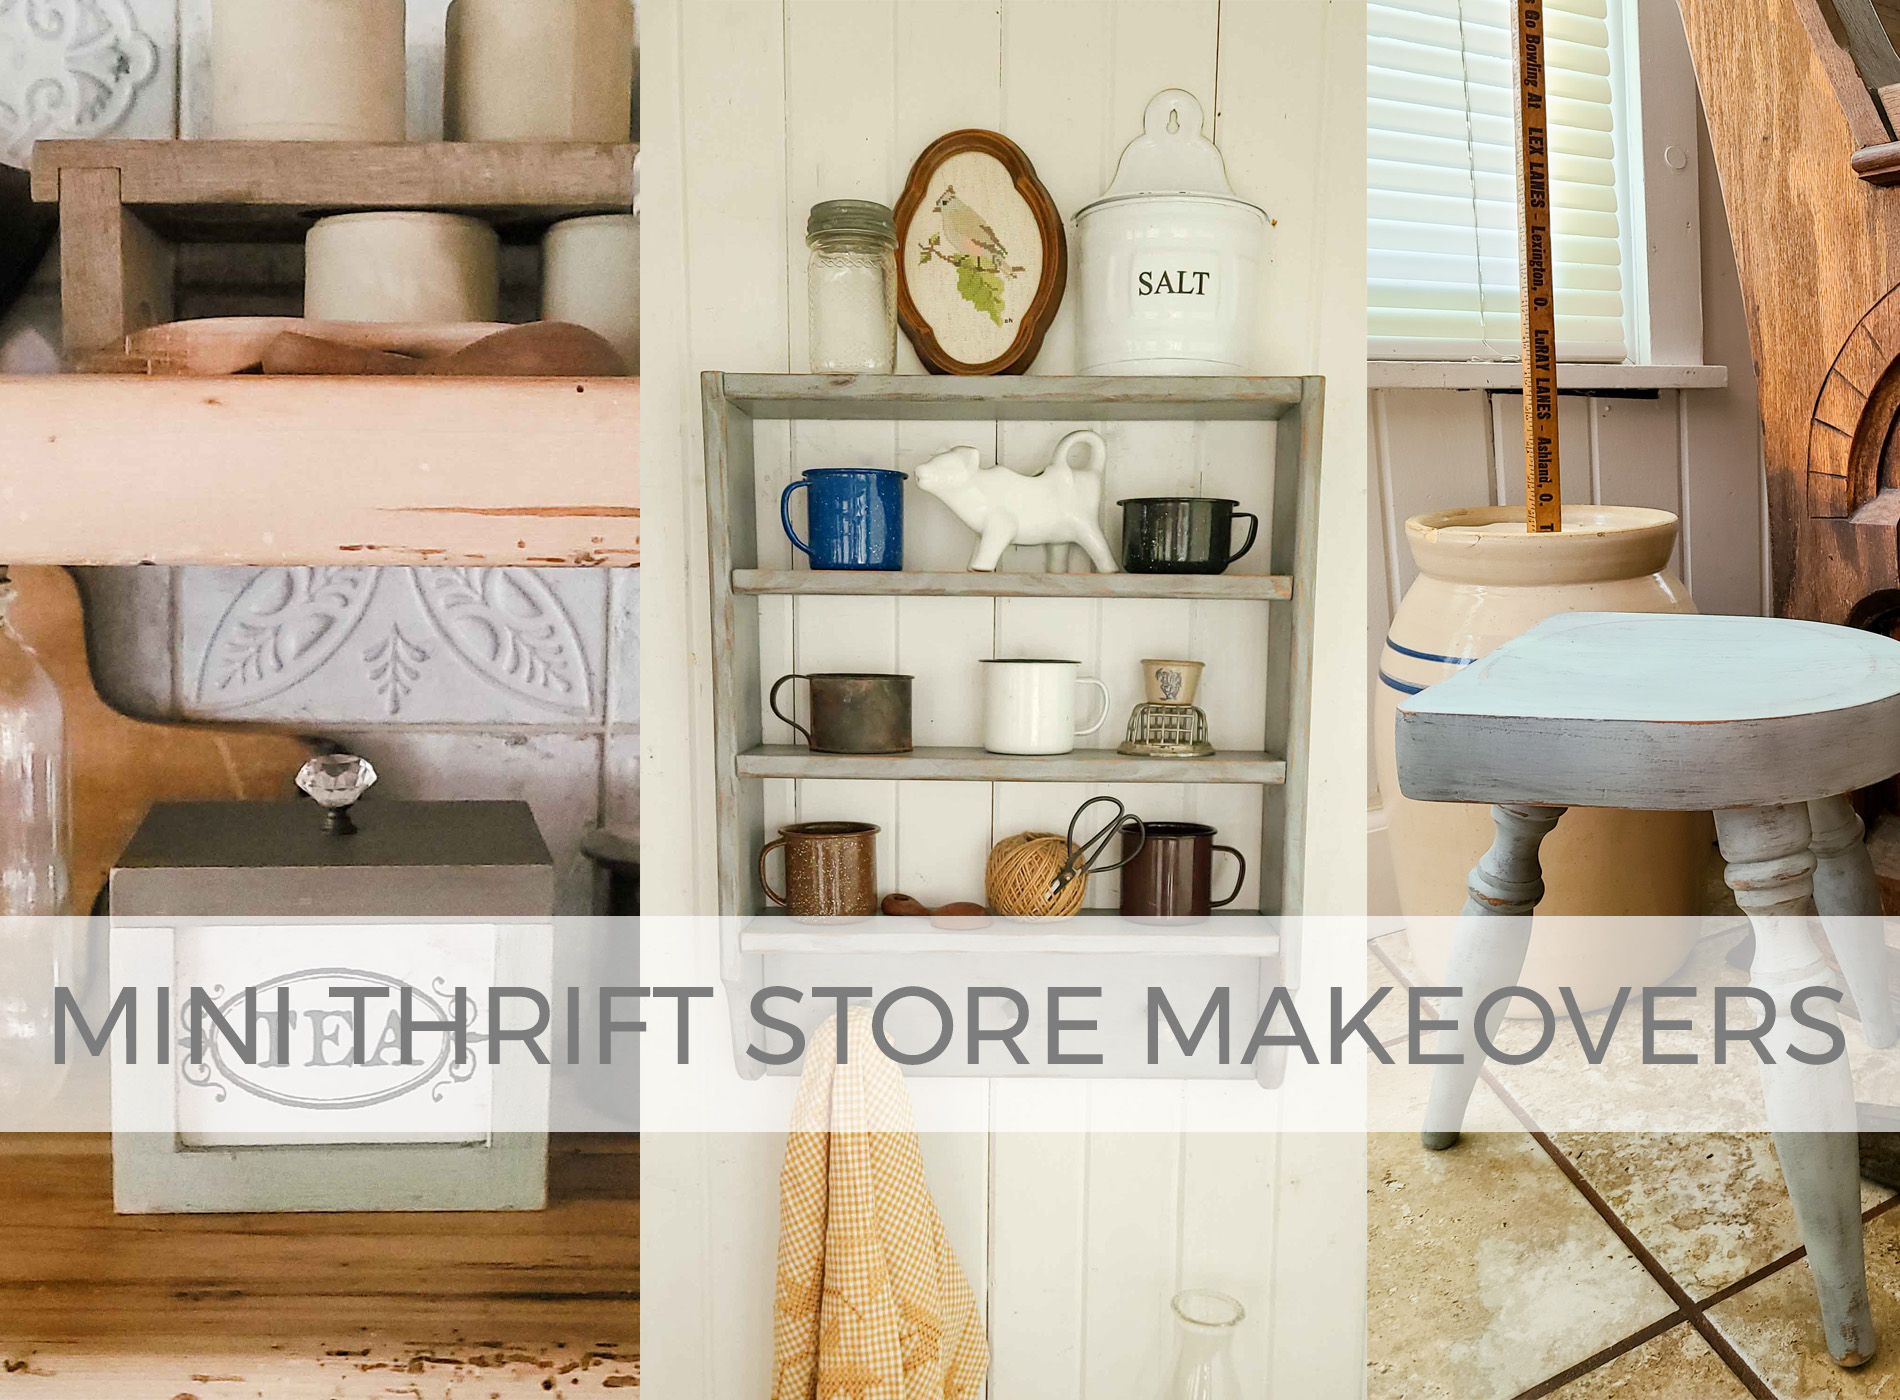 Mini Thrift Store Makeovers for Farmhouse Decor by Prodigal Pieces | prodigalpieces.com